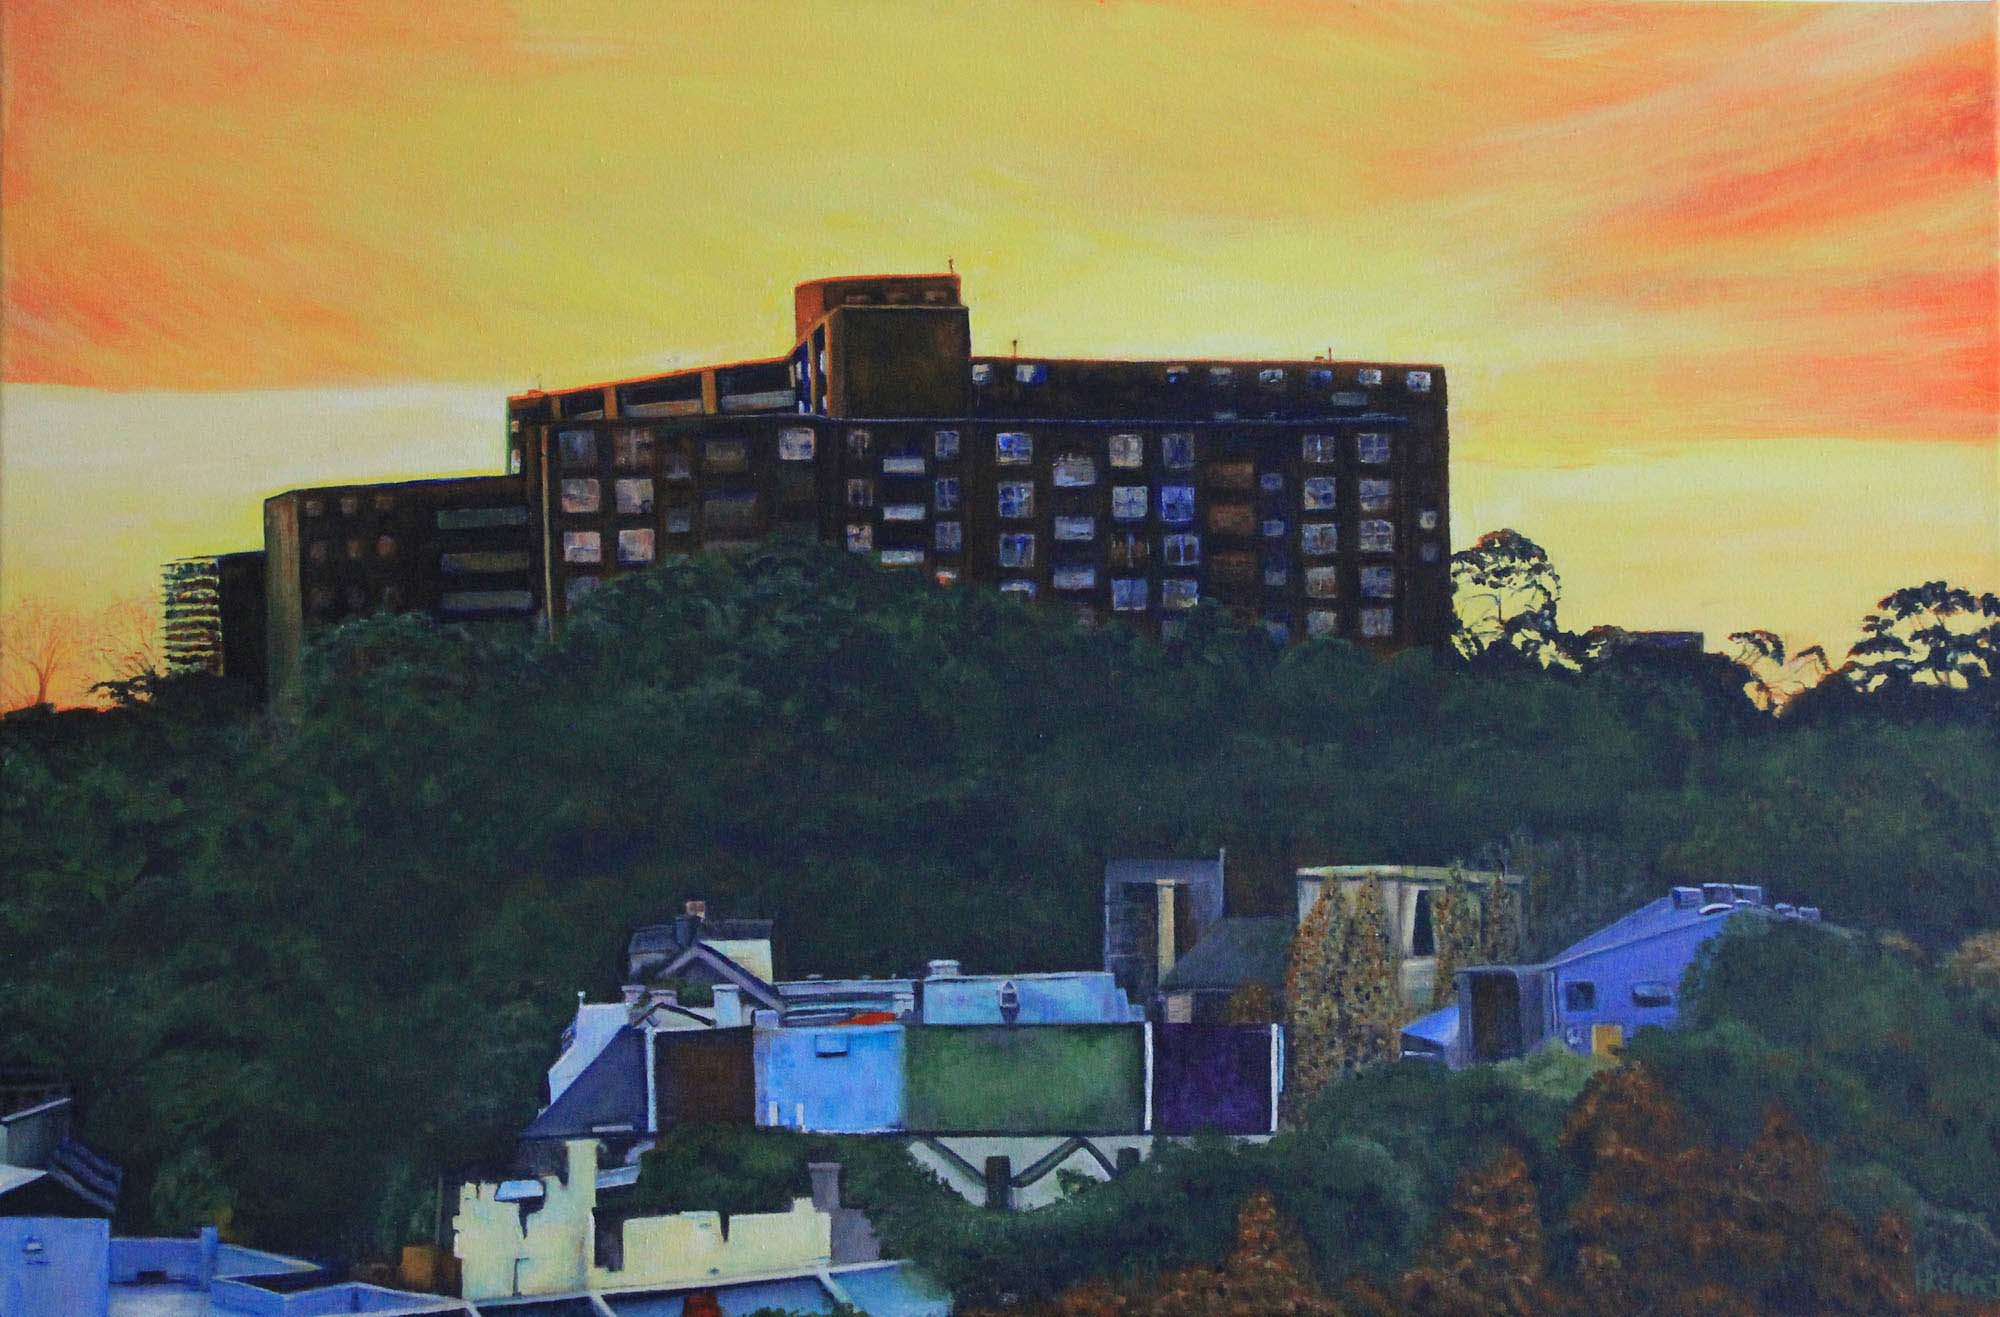 Sundown over Northcott, Surry Hills & Valleys